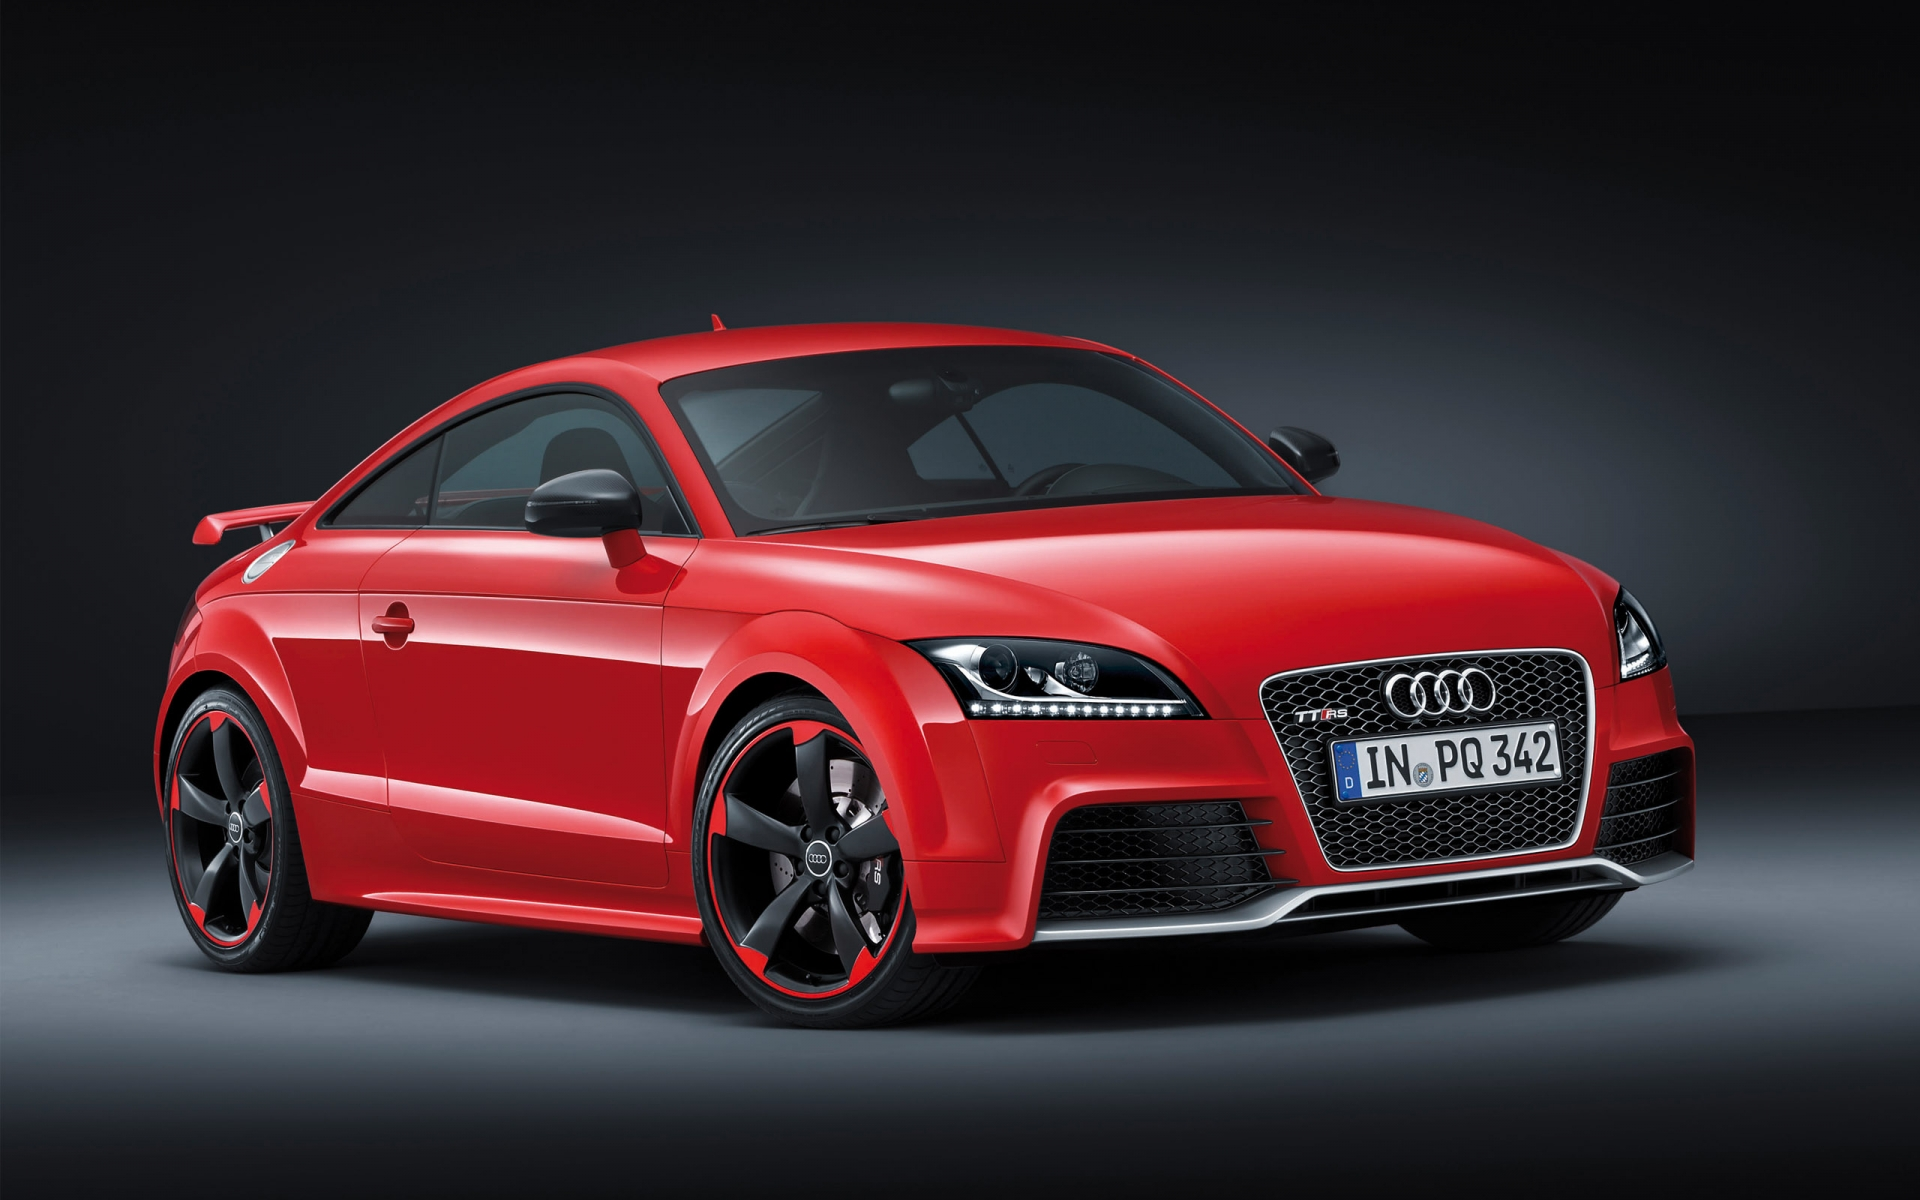 Audi TT RS Plus wallpaper downloads High resolution images for 1920x1200